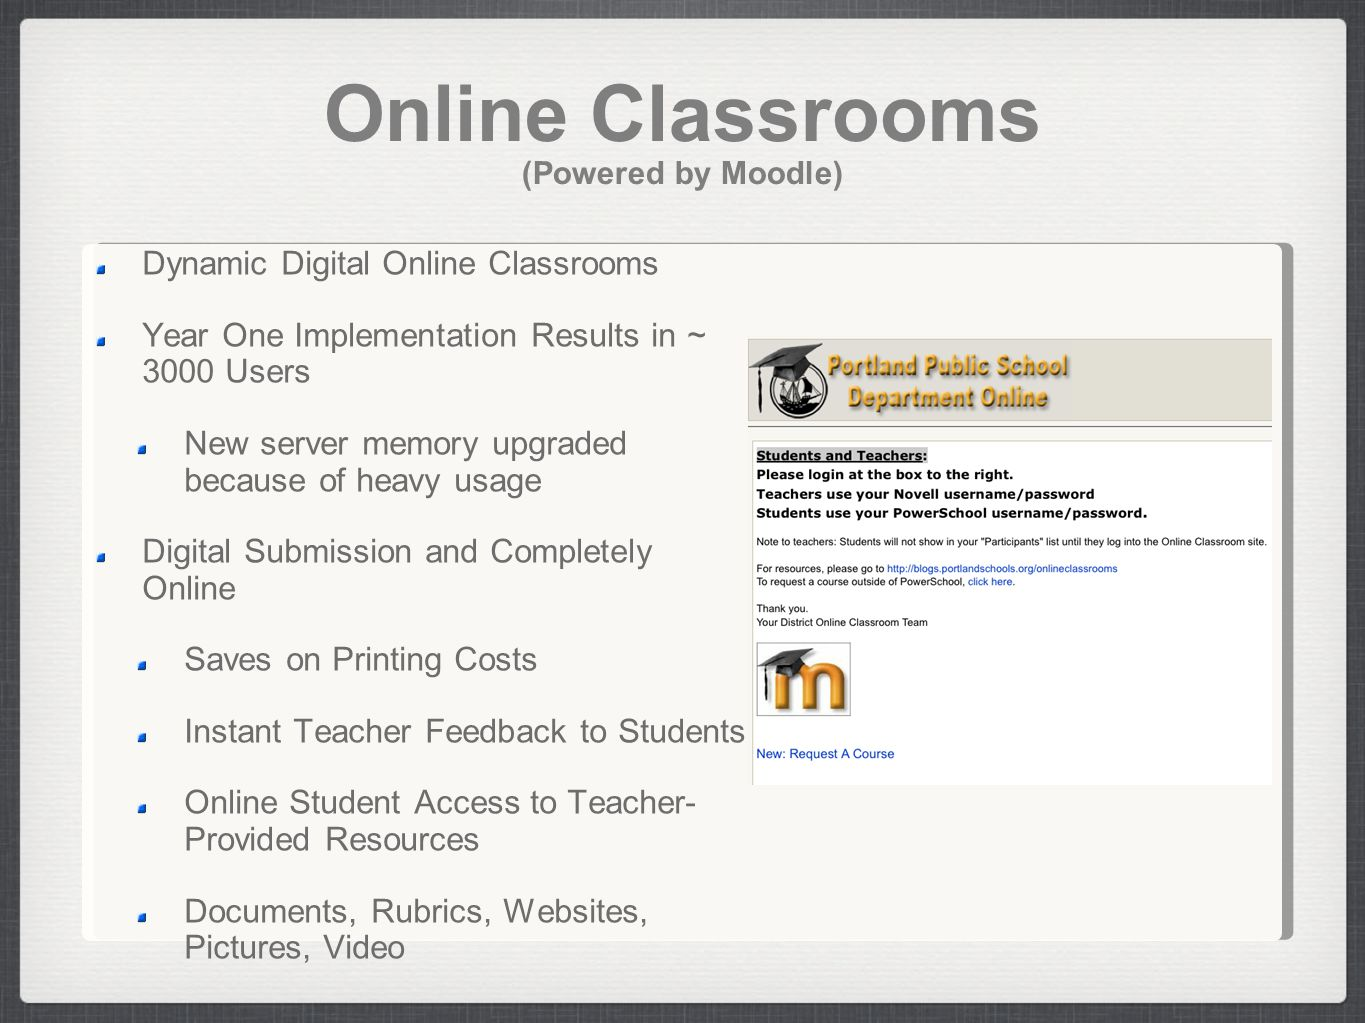 Online Classrooms (Powered by Moodle) Dynamic Digital Online Classrooms Year One Implementation Results in ~ 3000 Users New server memory upgraded because of heavy usage Digital Submission and Completely Online Saves on Printing Costs Instant Teacher Feedback to Students Online Student Access to Teacher- Provided Resources Documents, Rubrics, Websites, Pictures, Video